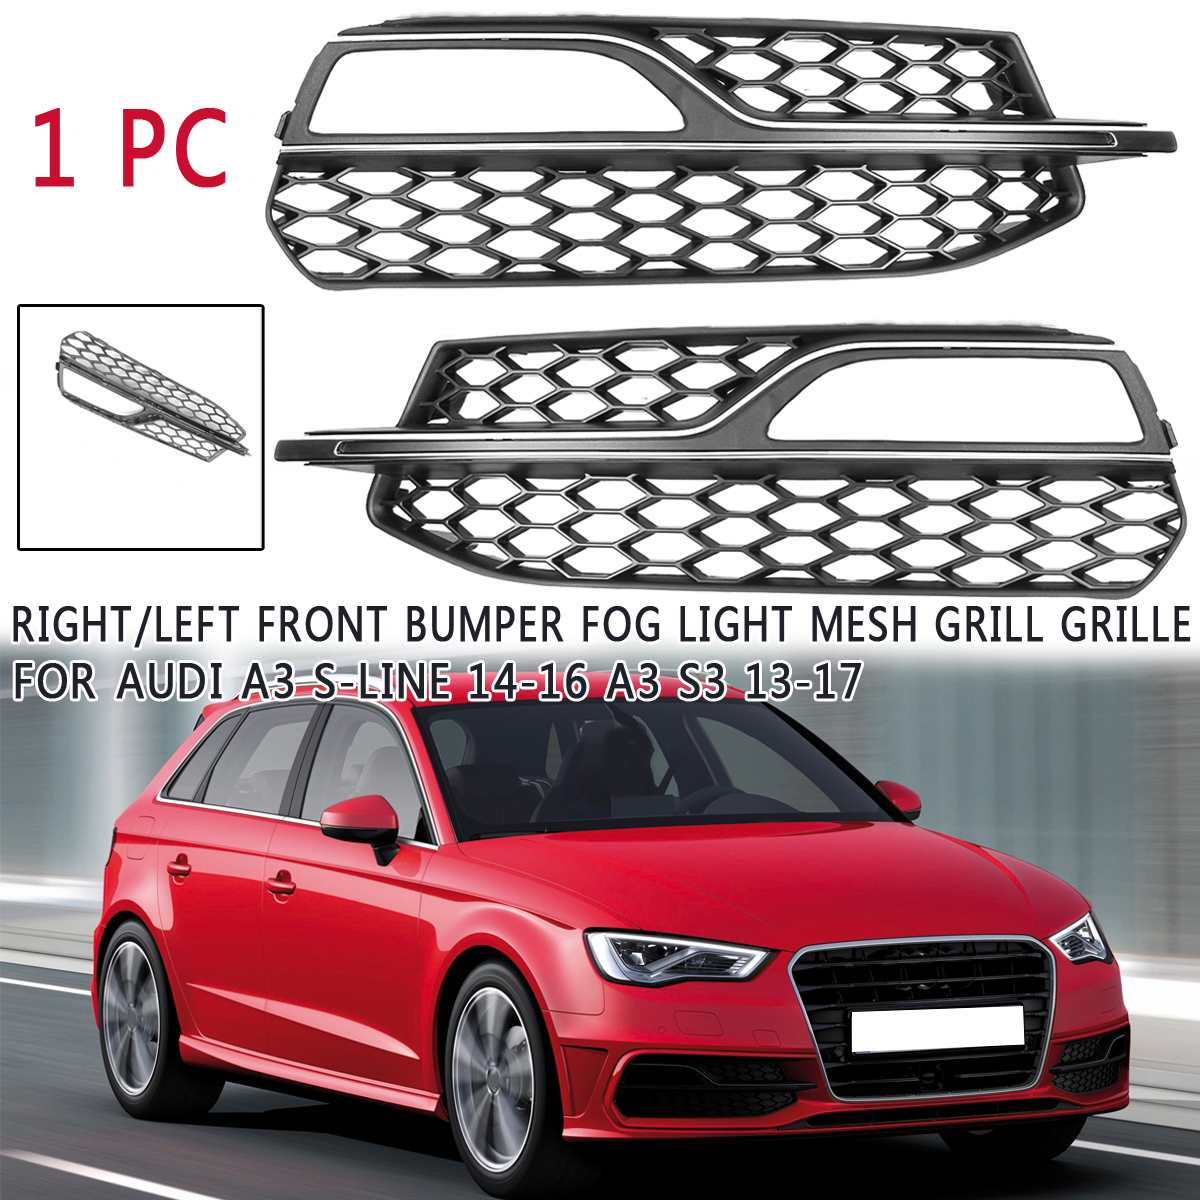 ABS Front Bumper Fog Light Grilles Grill For Audi A3 S3 2013 2014 2015 2016 2017 For A3 S-Line 2014 2015 2016 Car-styling